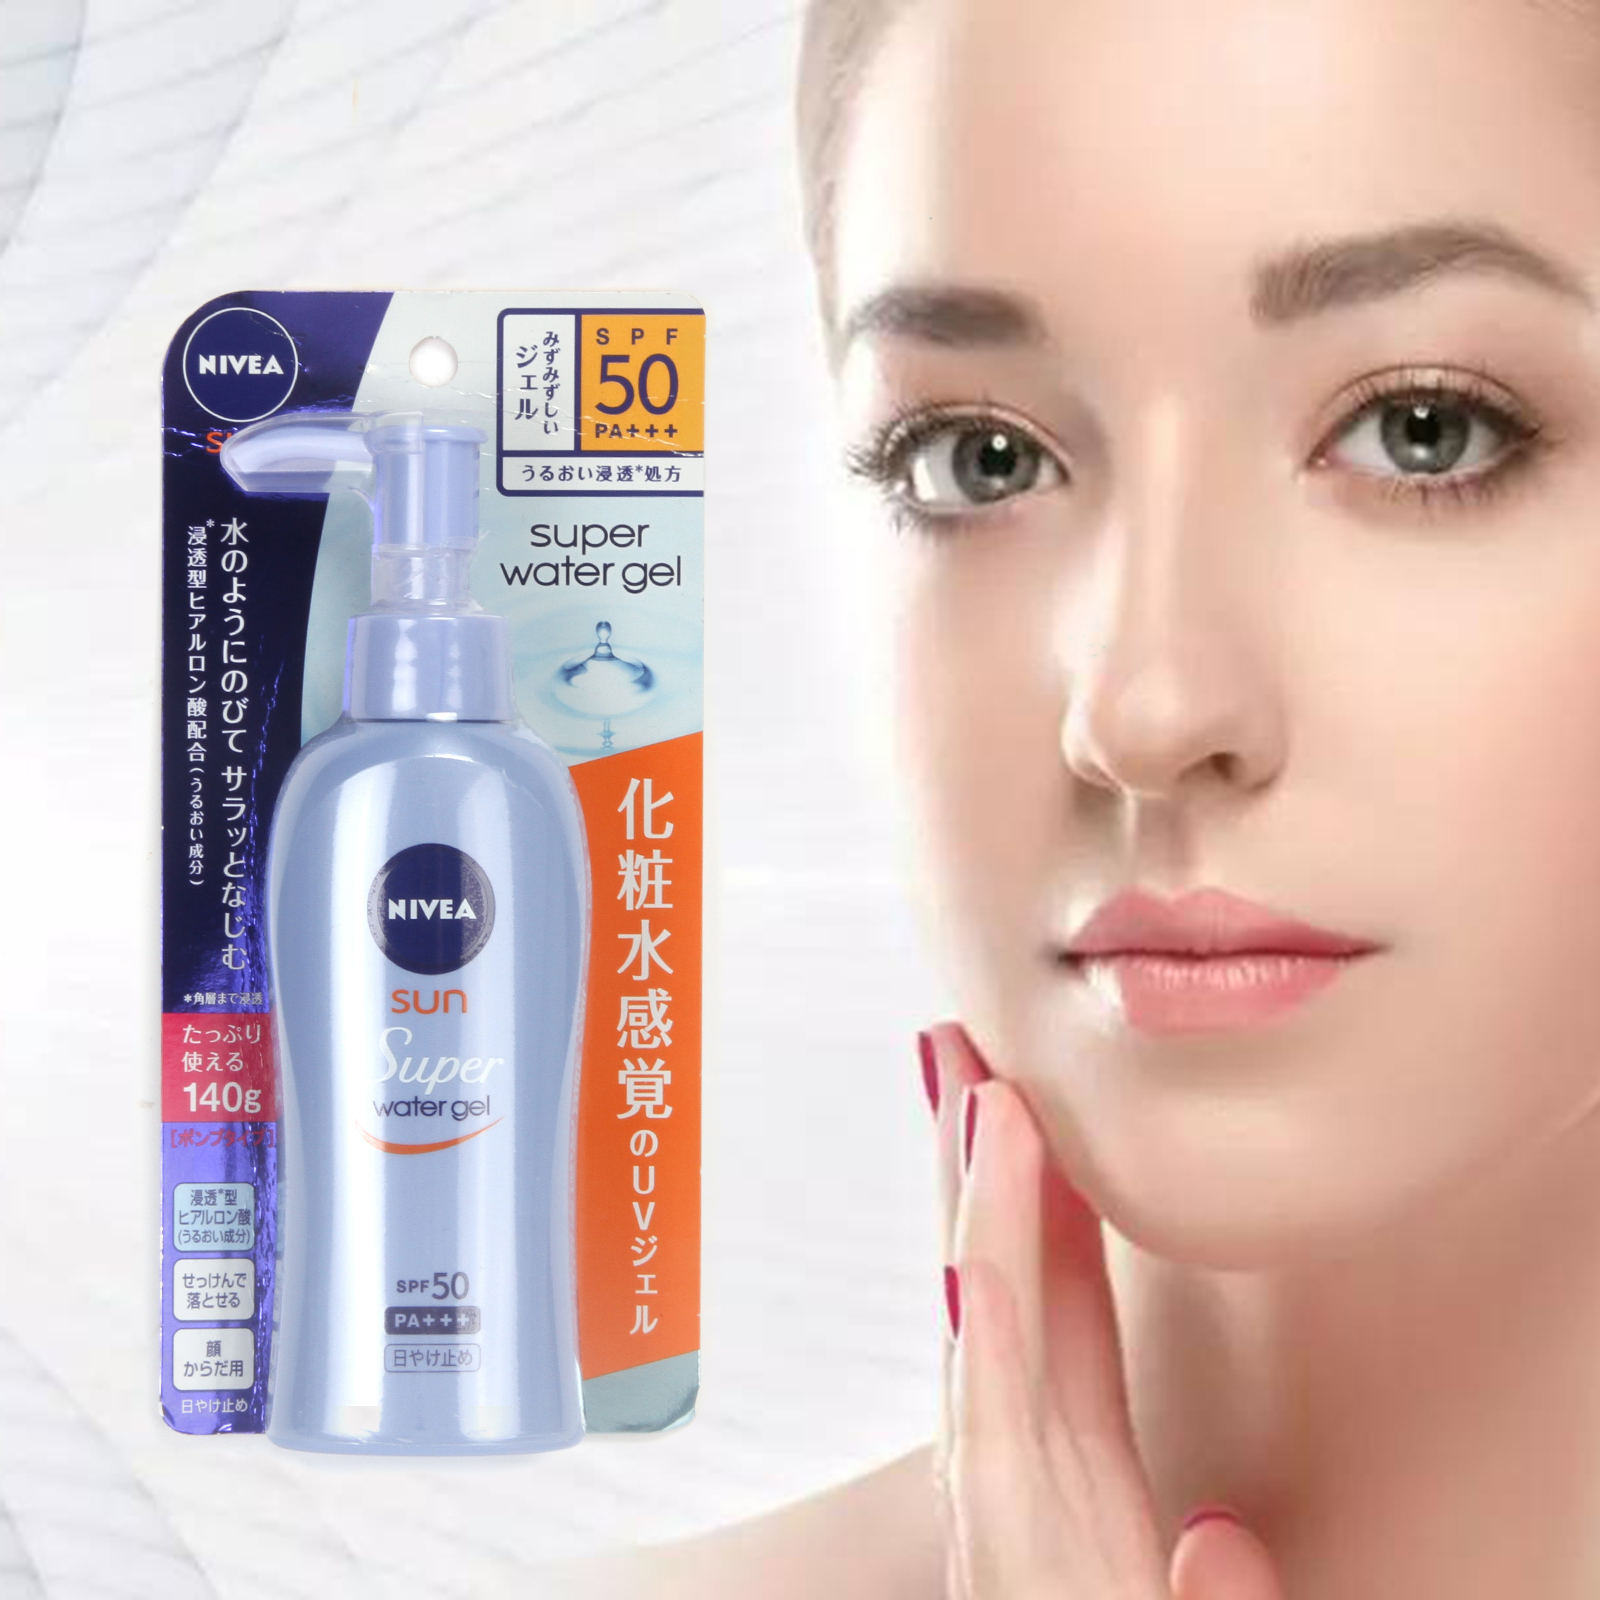 1pcs NIVEA Super SUN Protect Water Gel Sunscreen Hyaluronic SPF50/PA+++ 140g  Japan